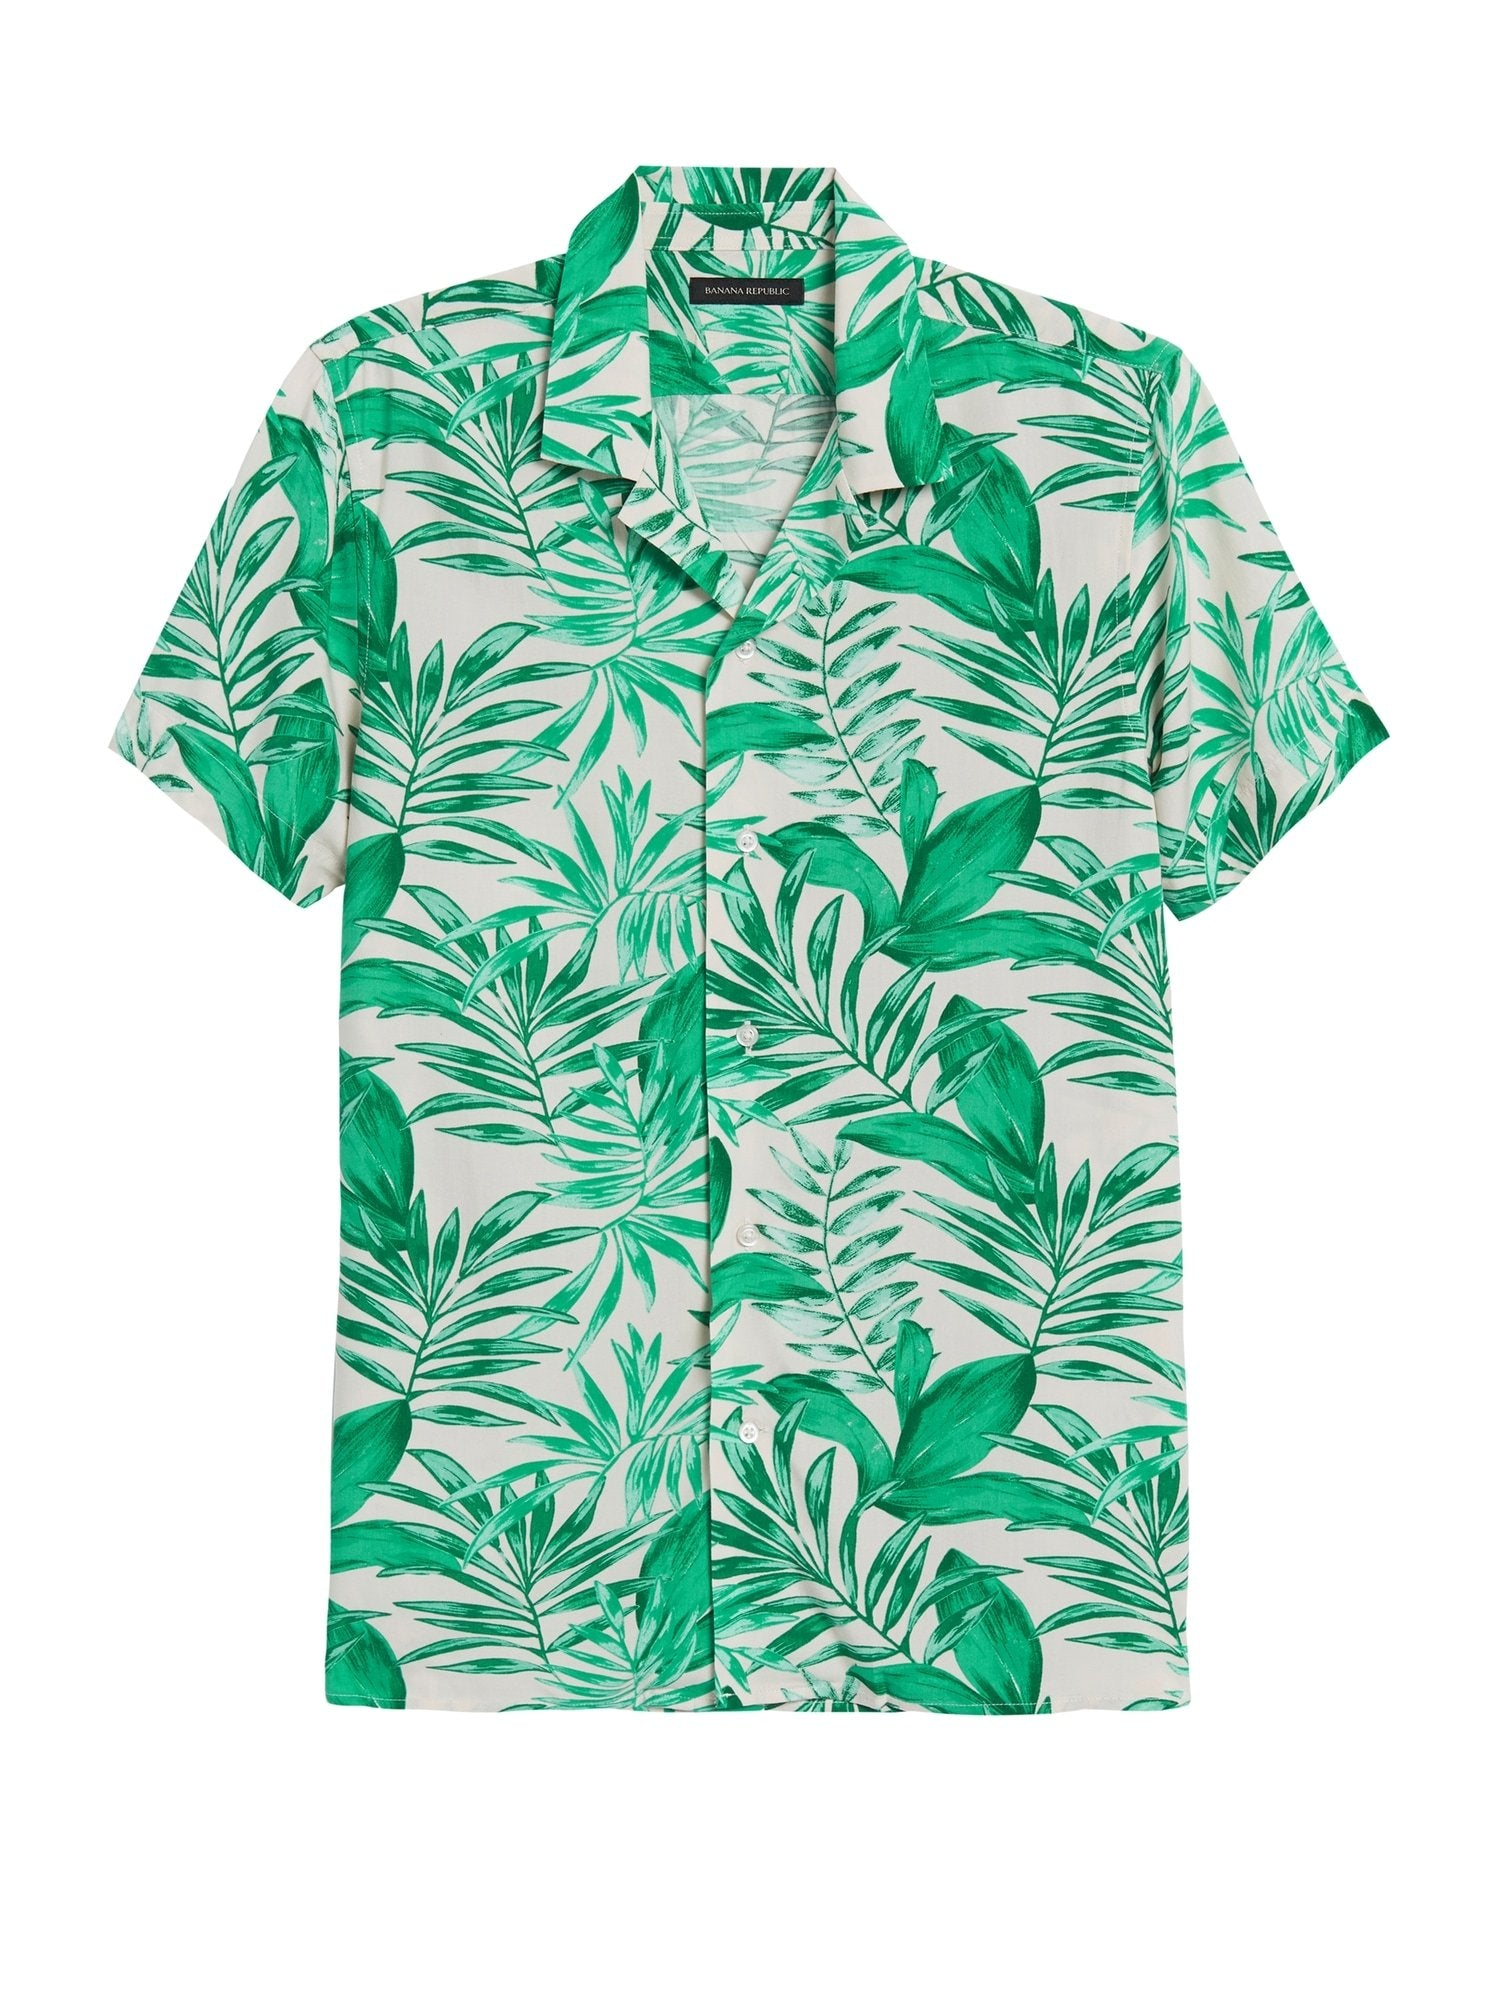 Canopy Green Jungle Print